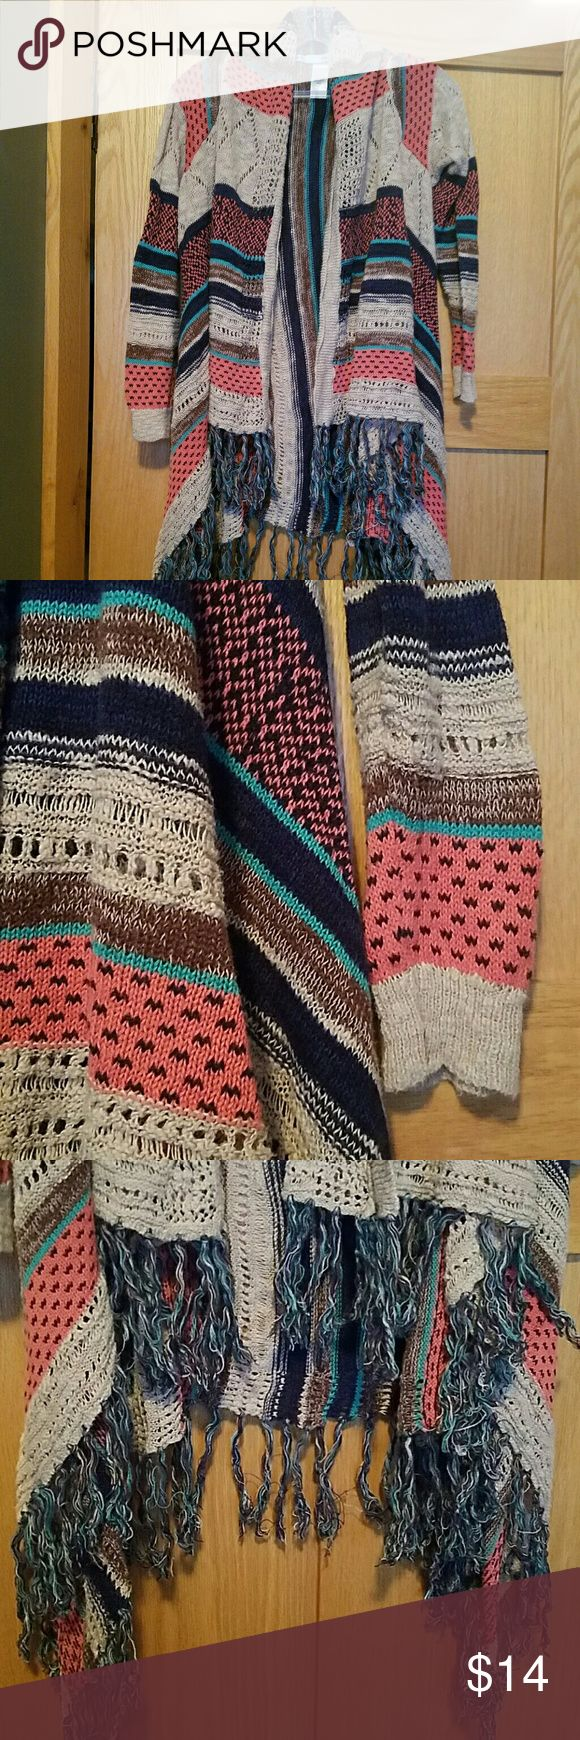 Maurices Multi-color Shrug Sweater with fringe Maurices shrug sweater with fringe on bottom.  Fun colors!! Maurices Sweaters Shrugs & Ponchos